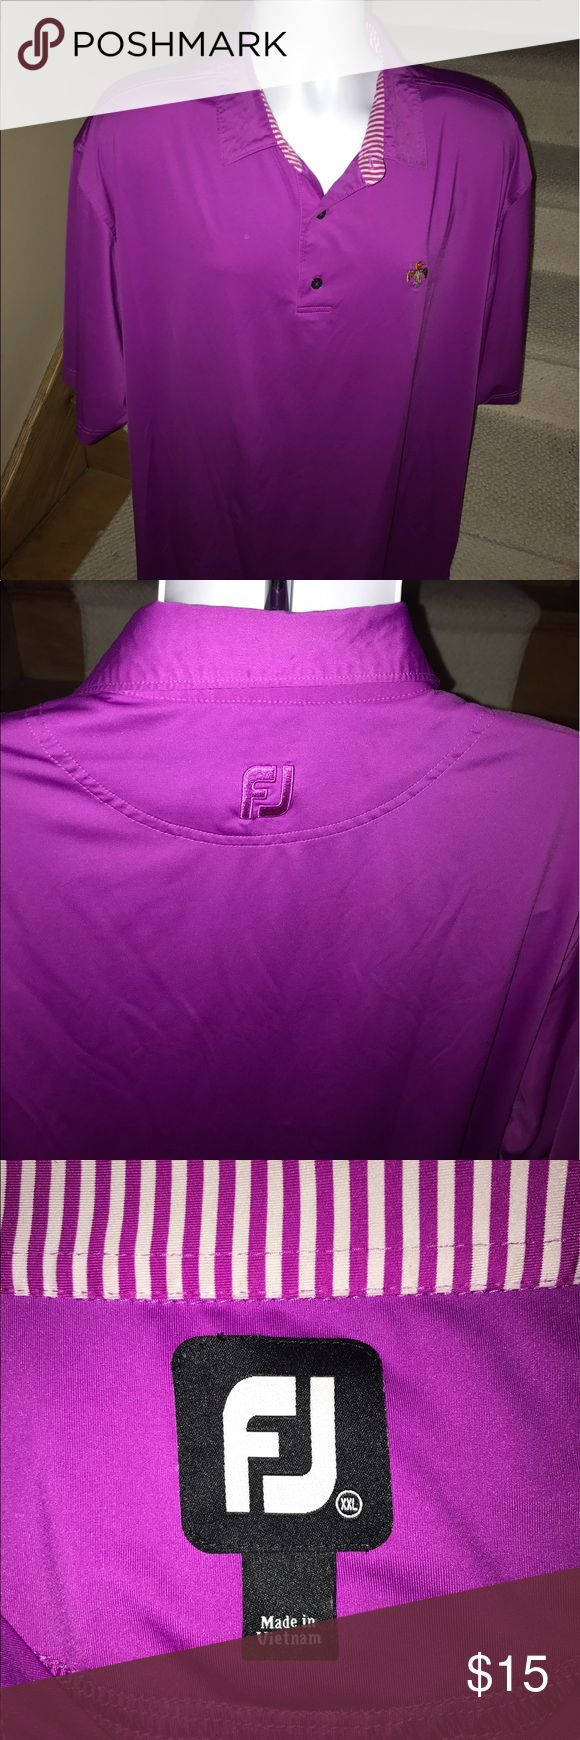 FJ FootJoy wicking bright golf polo shirt - men XL Stunning men's FootJoy wicking casual golf polo shirt that is sized XL.  Made out of a stretchy blend of polyester and spandex.  Absolutely perfect mint condition.  You will love it. FootJoy Shirts Polos